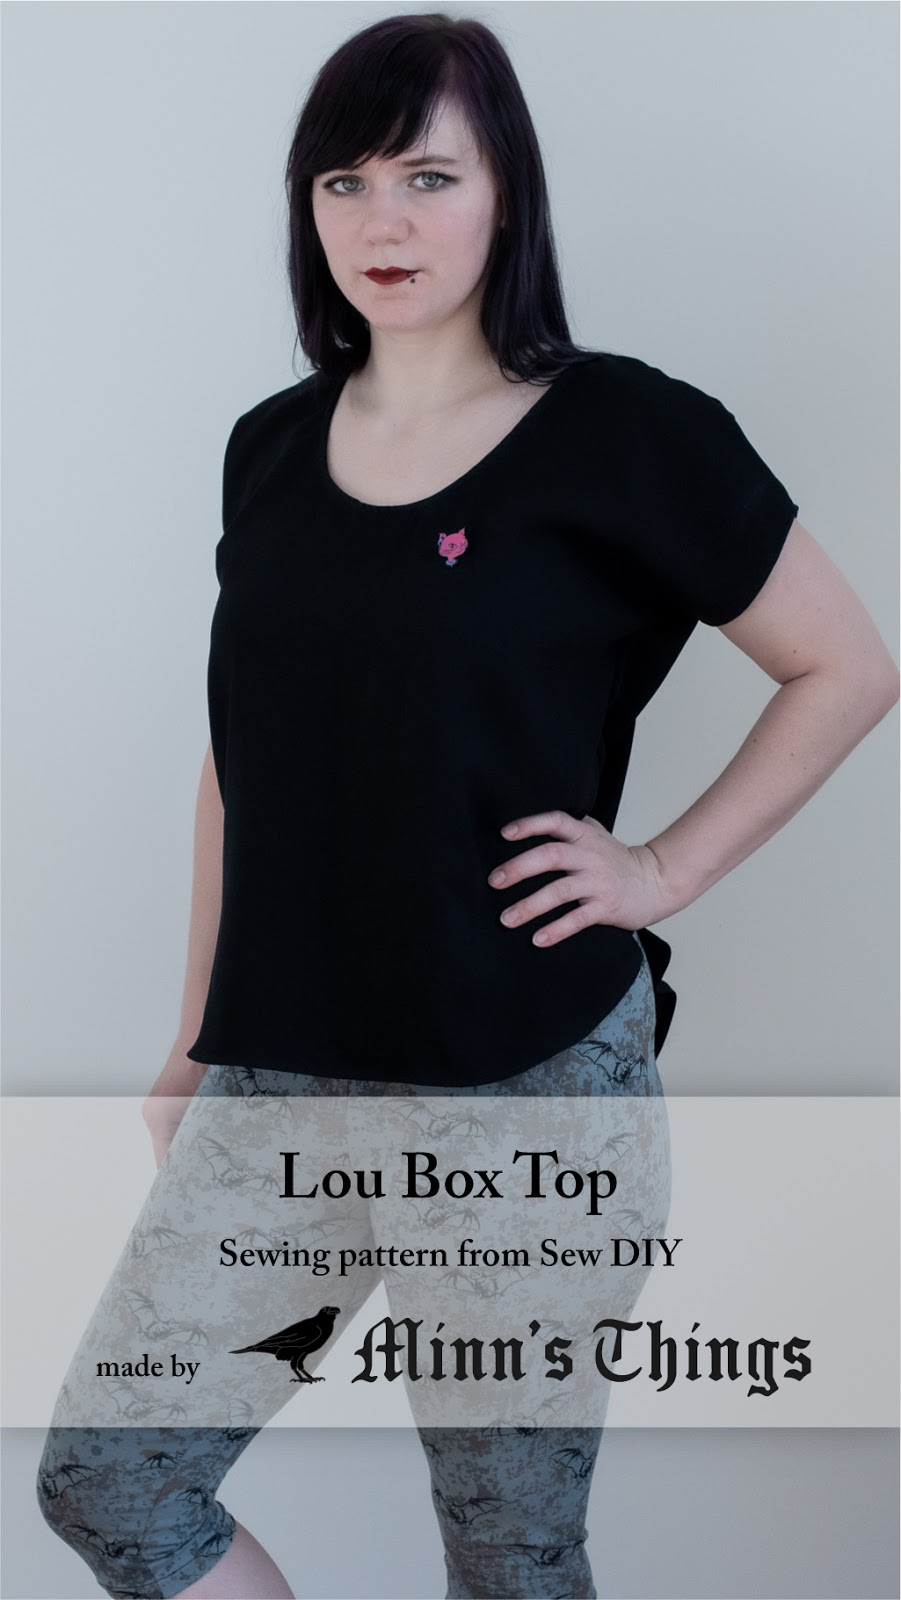 minn's things alternative blogger sewing pattern sew diy lou box top pinterest